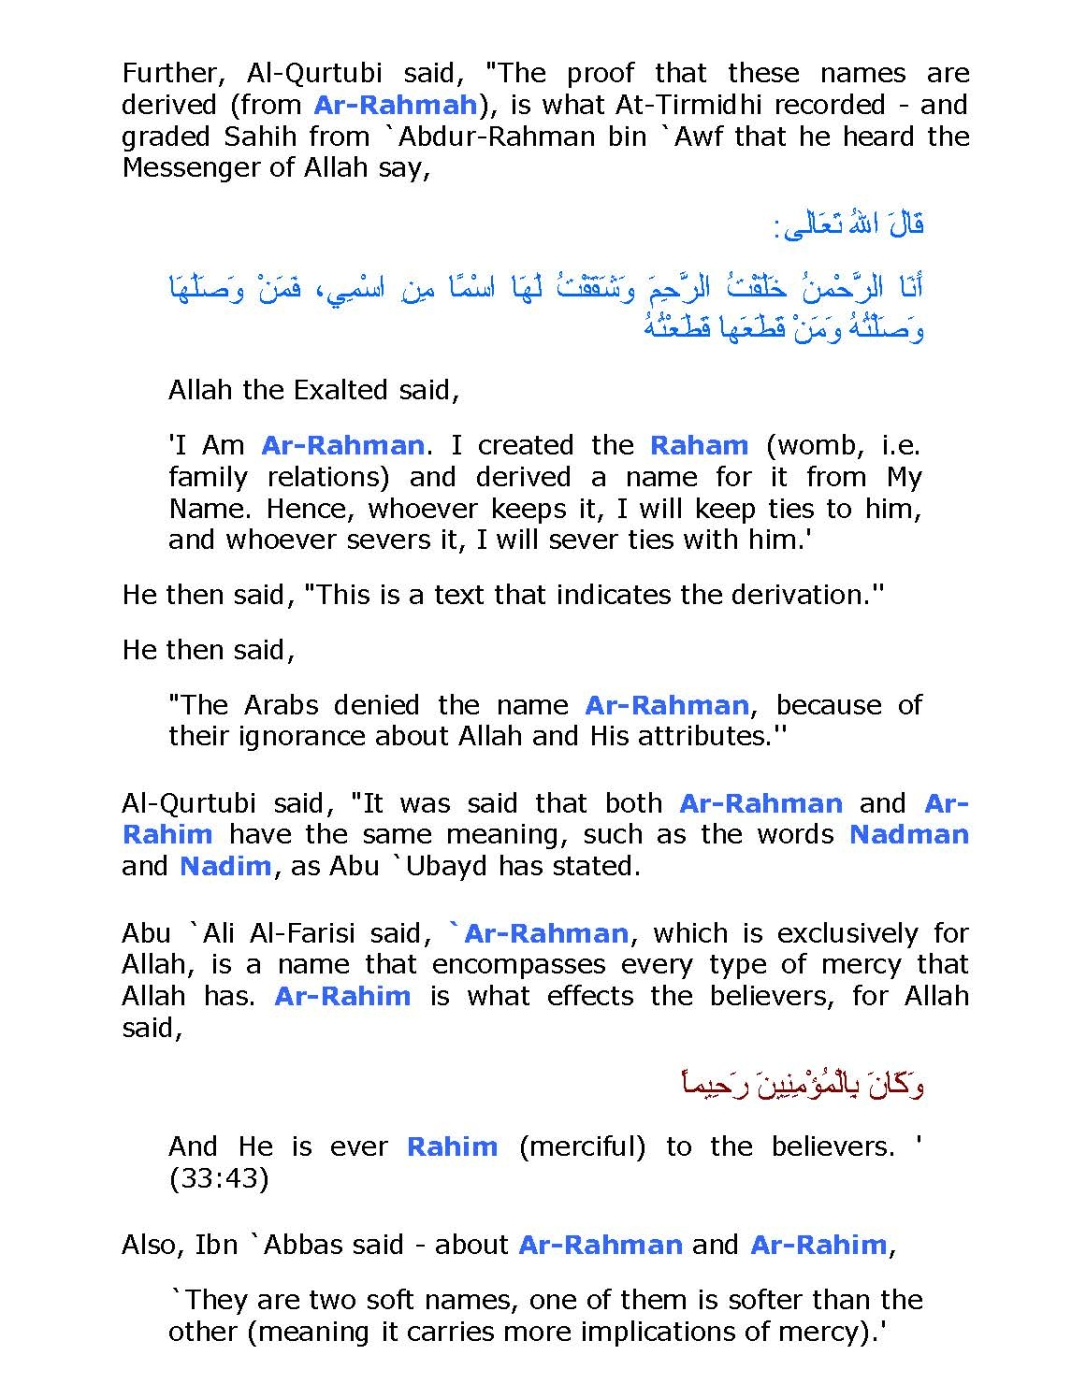 001Fateh_Page_35